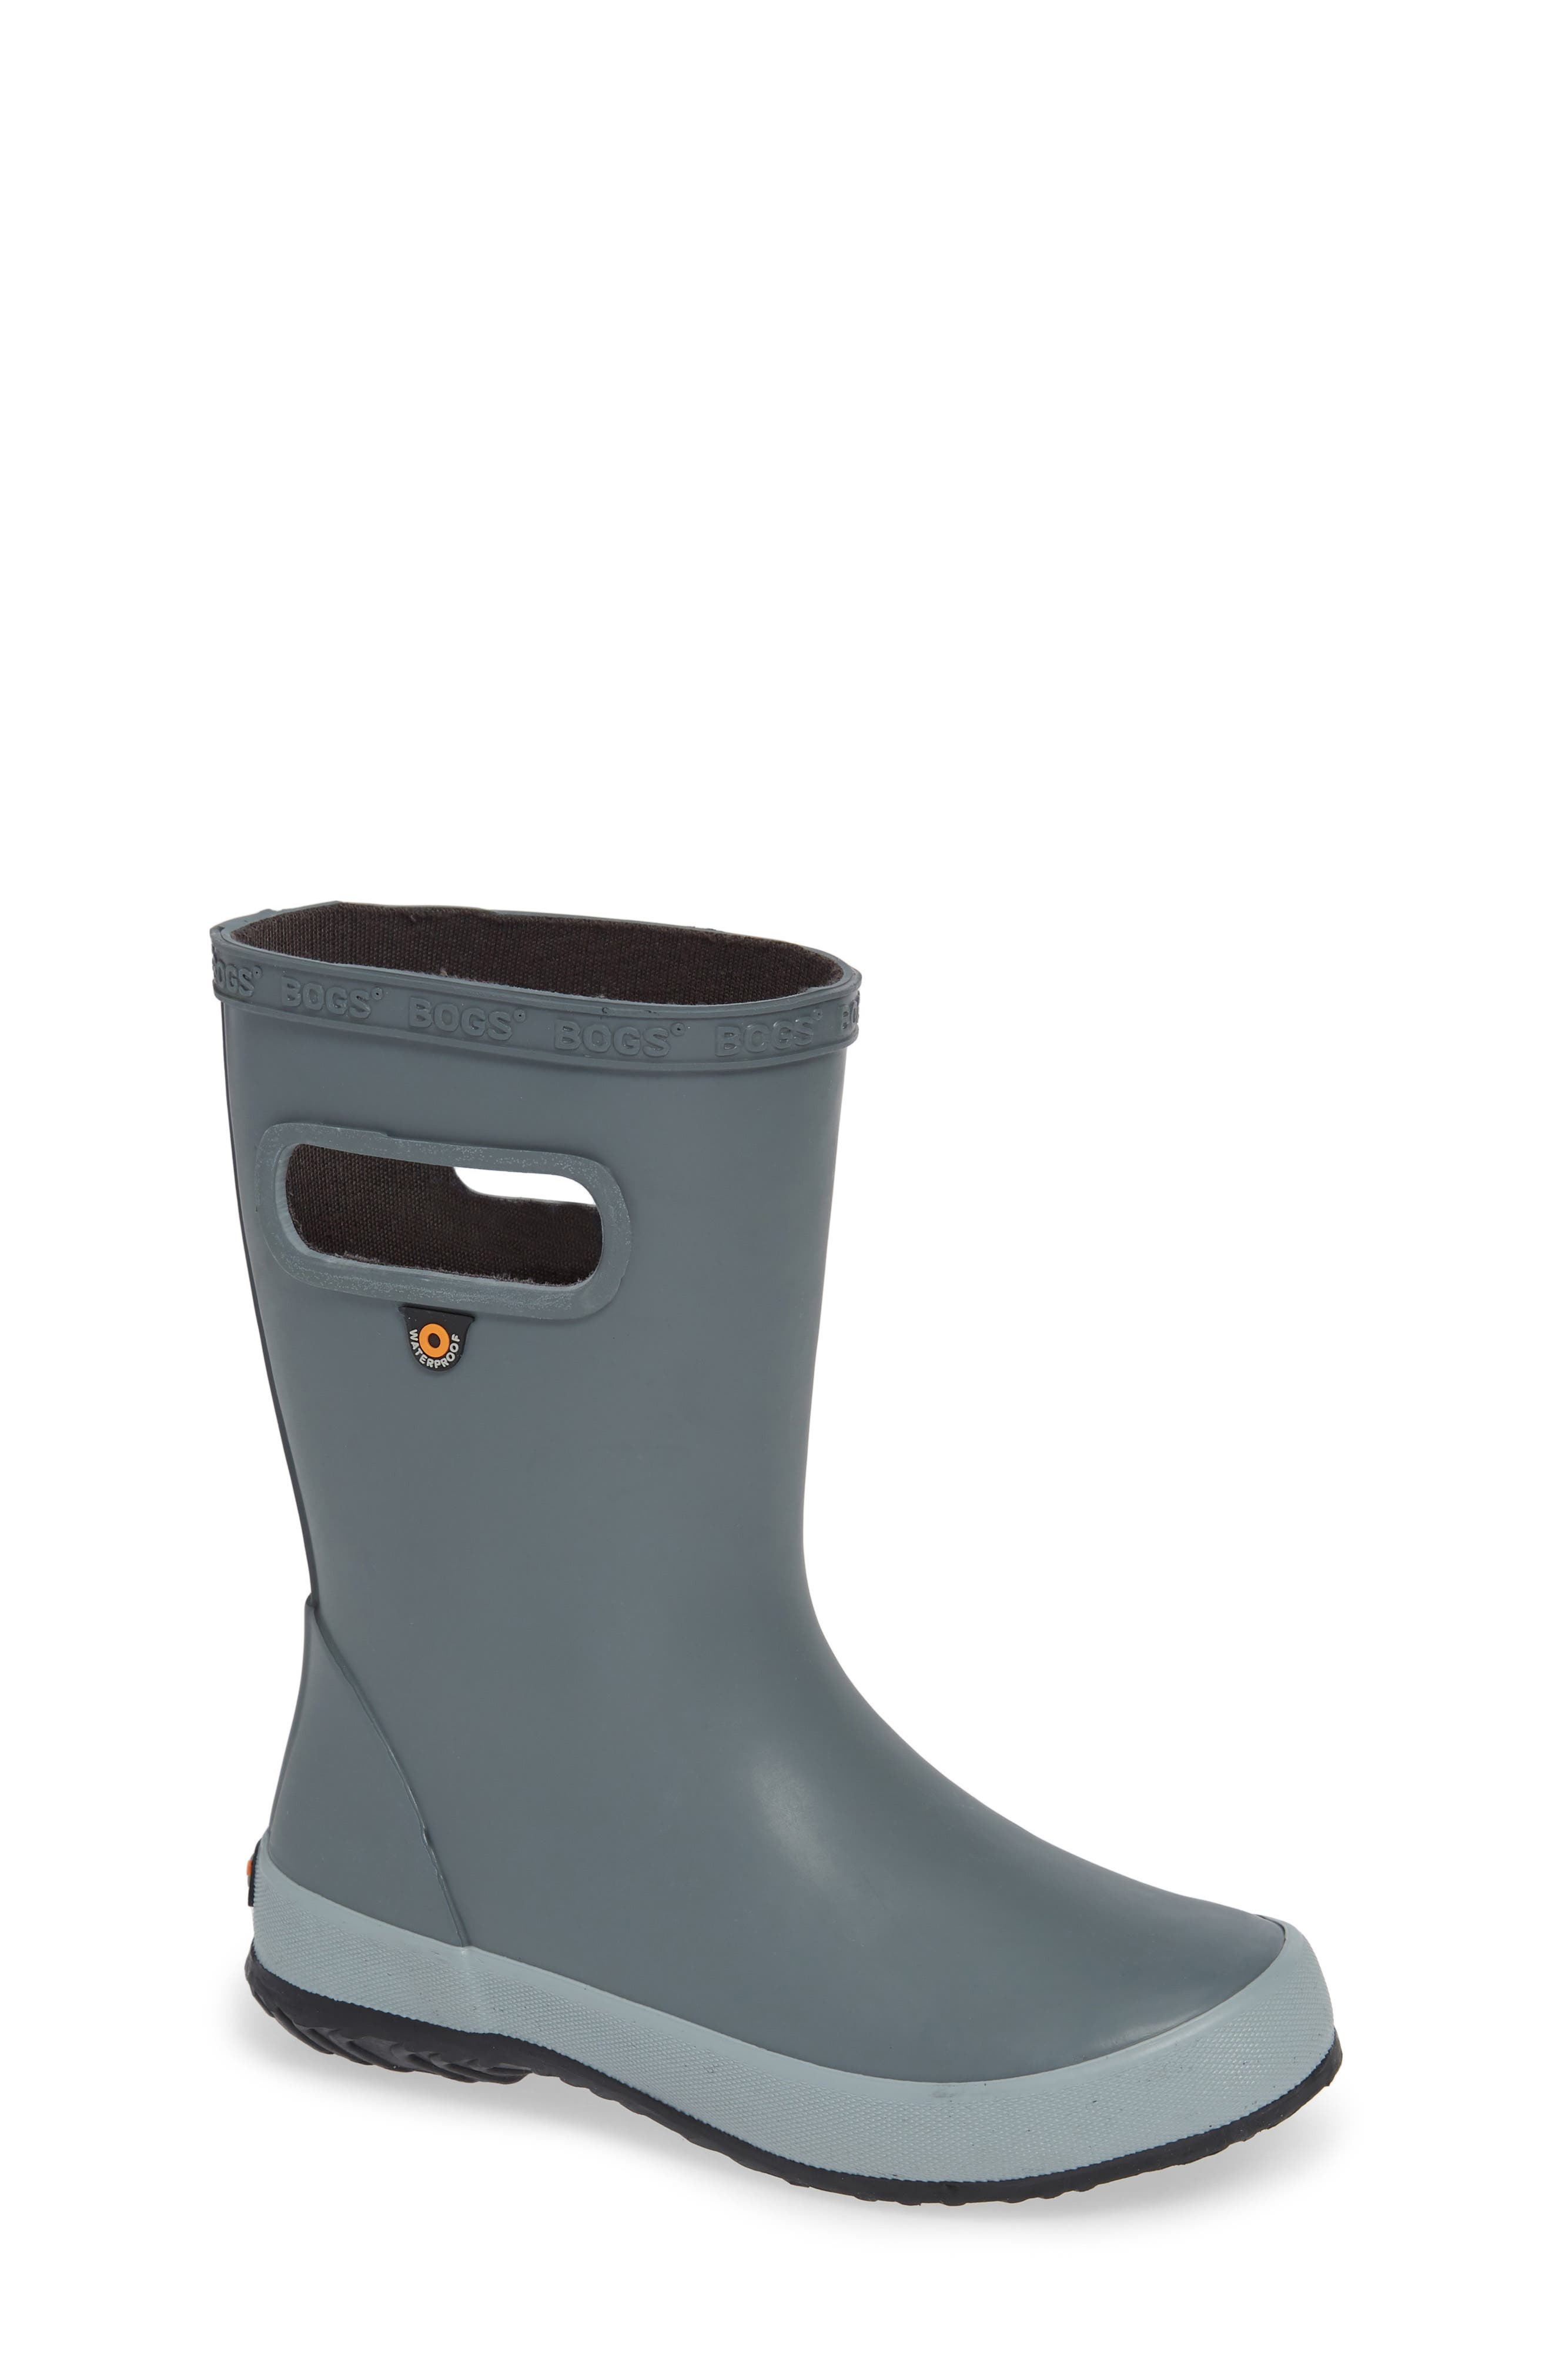 Skipper Solid Rubber Rain Boot,                             Main thumbnail 1, color,                             GRAY